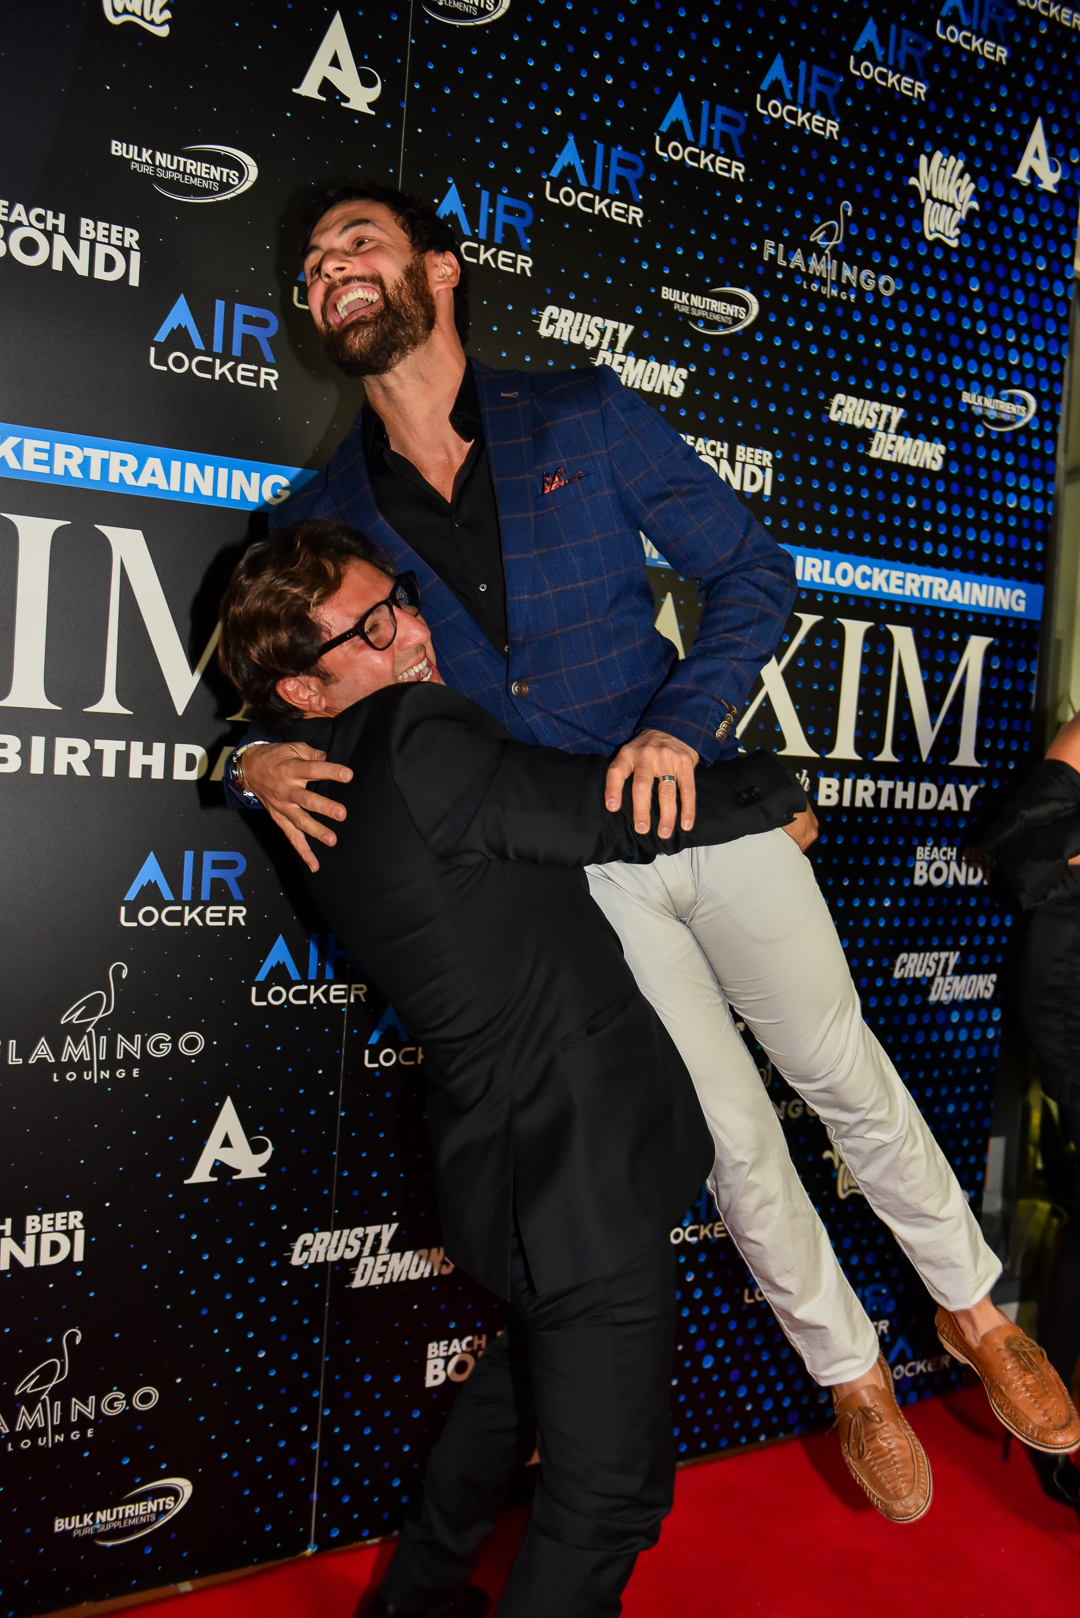 MAXIM_Australia_8th Birthday_11